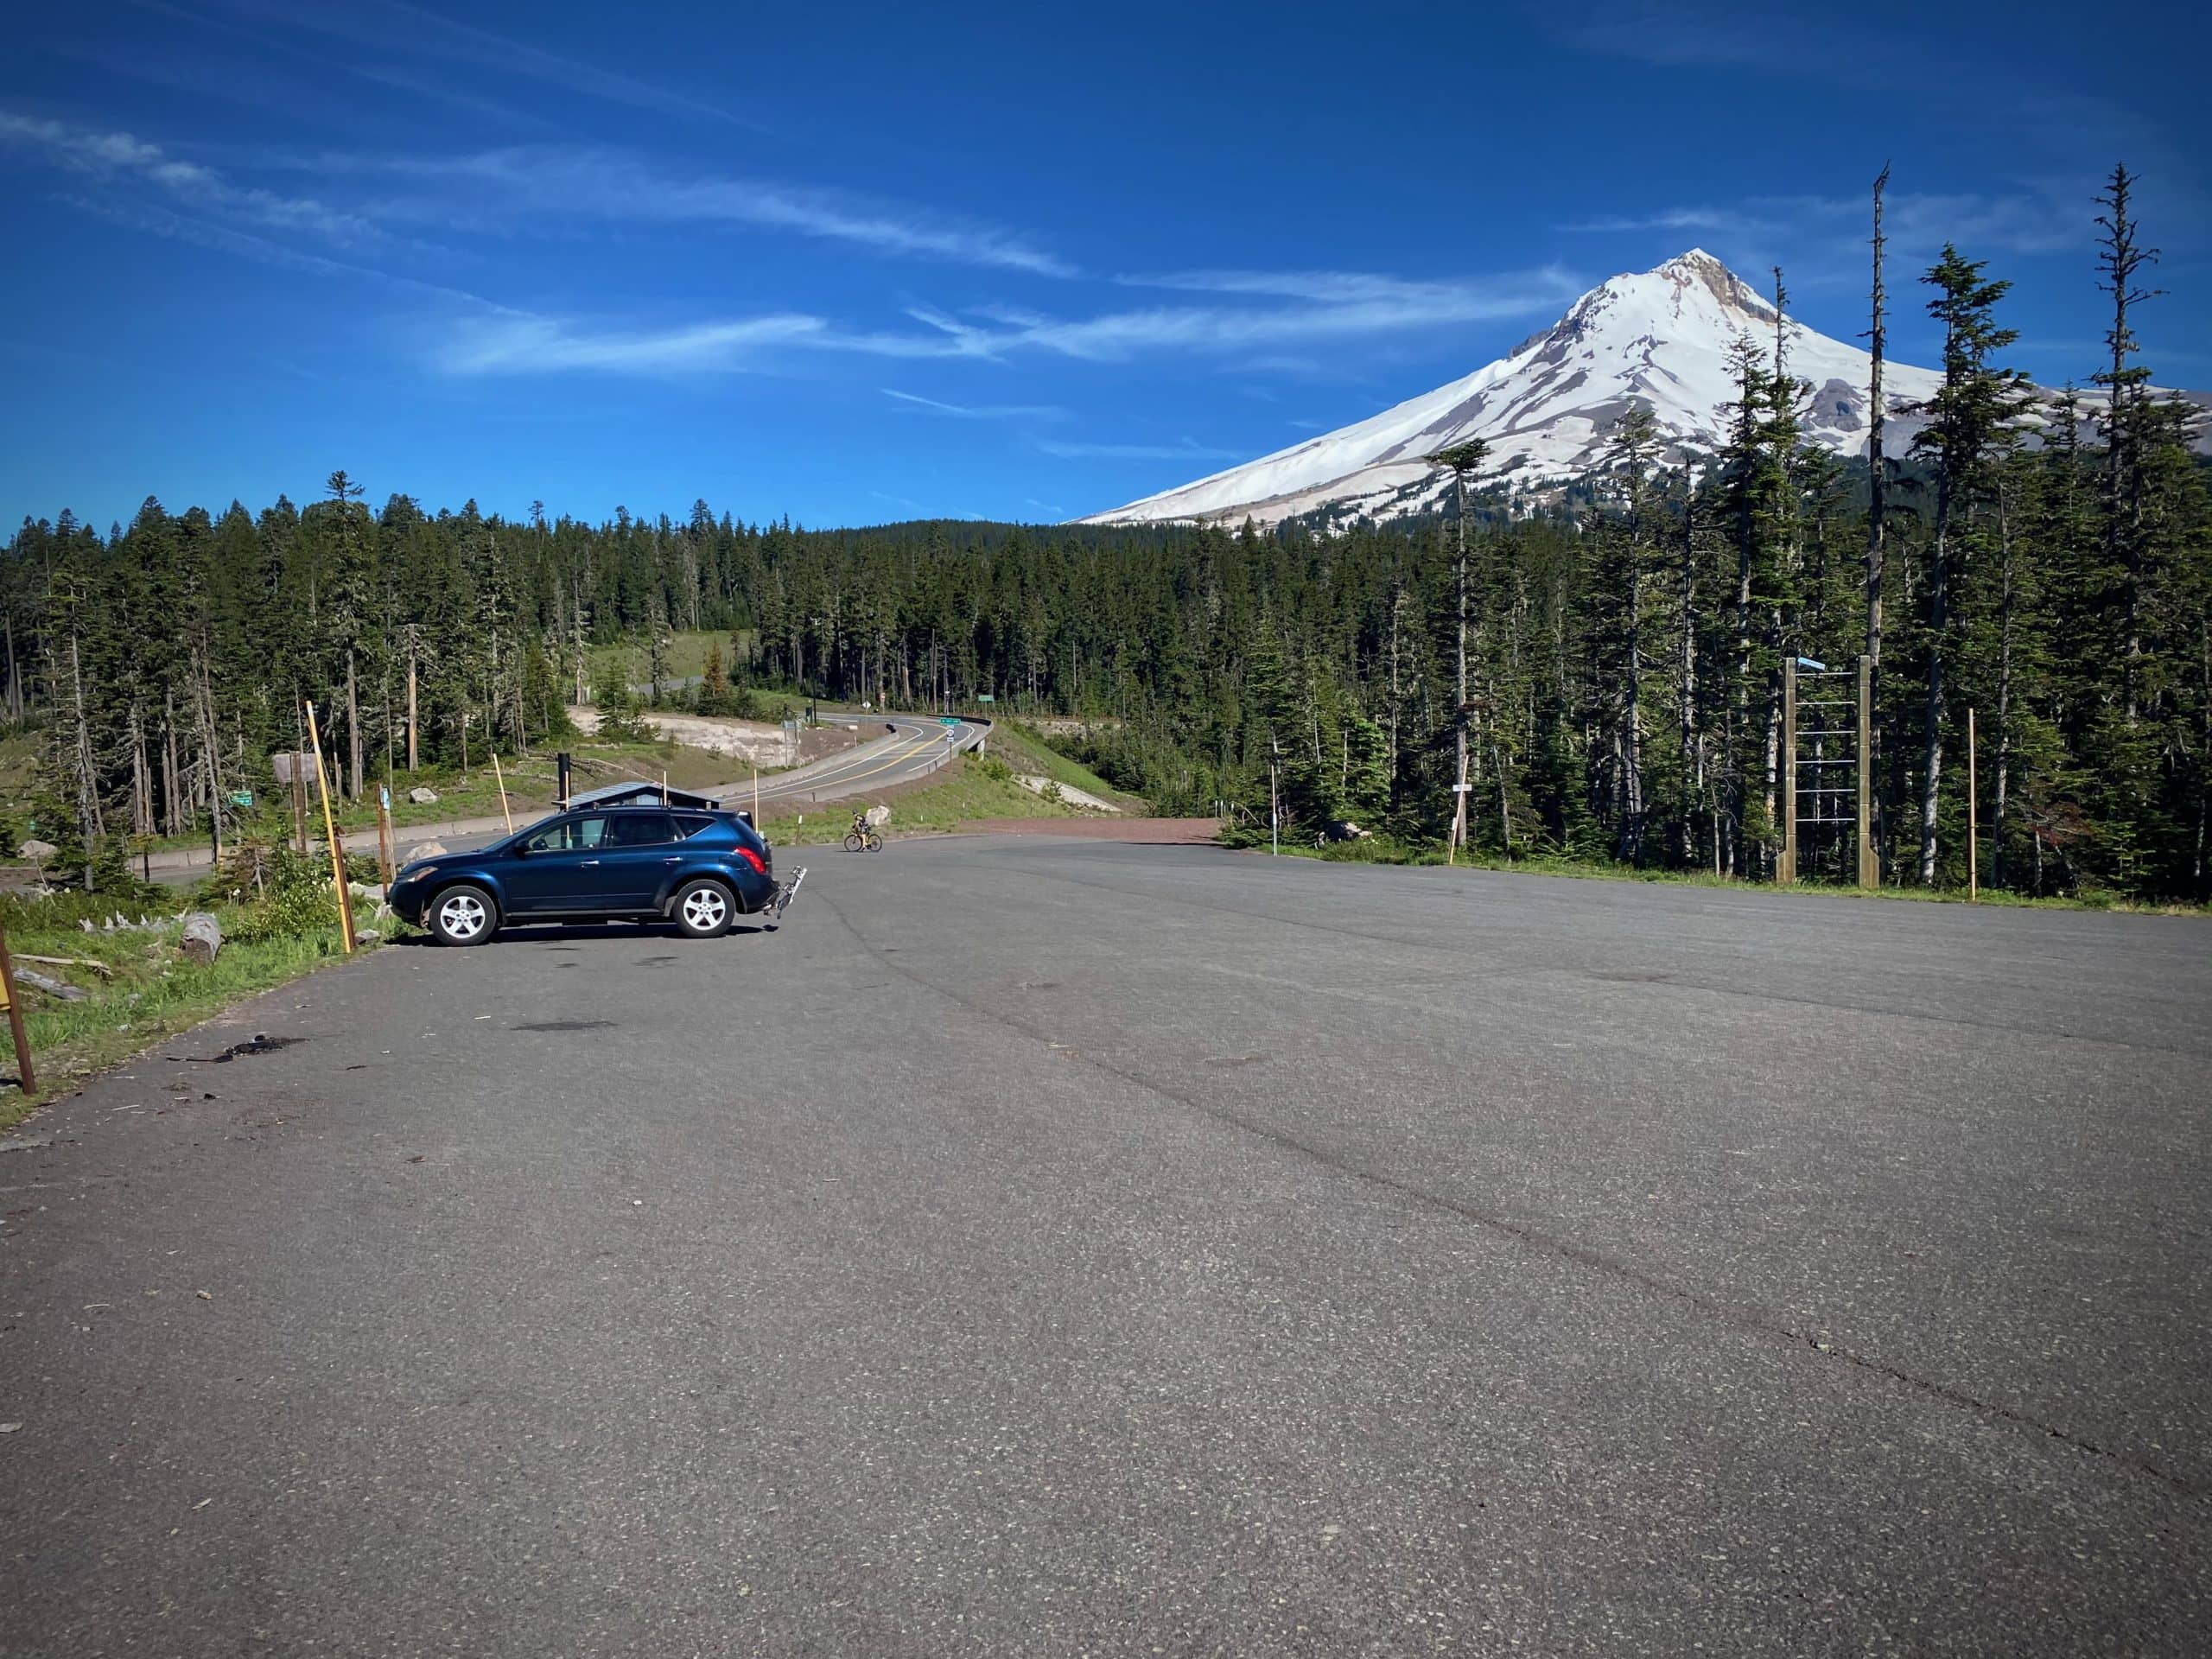 The parking area for the Bennett Pass route on Dirty Freehub at Bennett Pass sno-park.